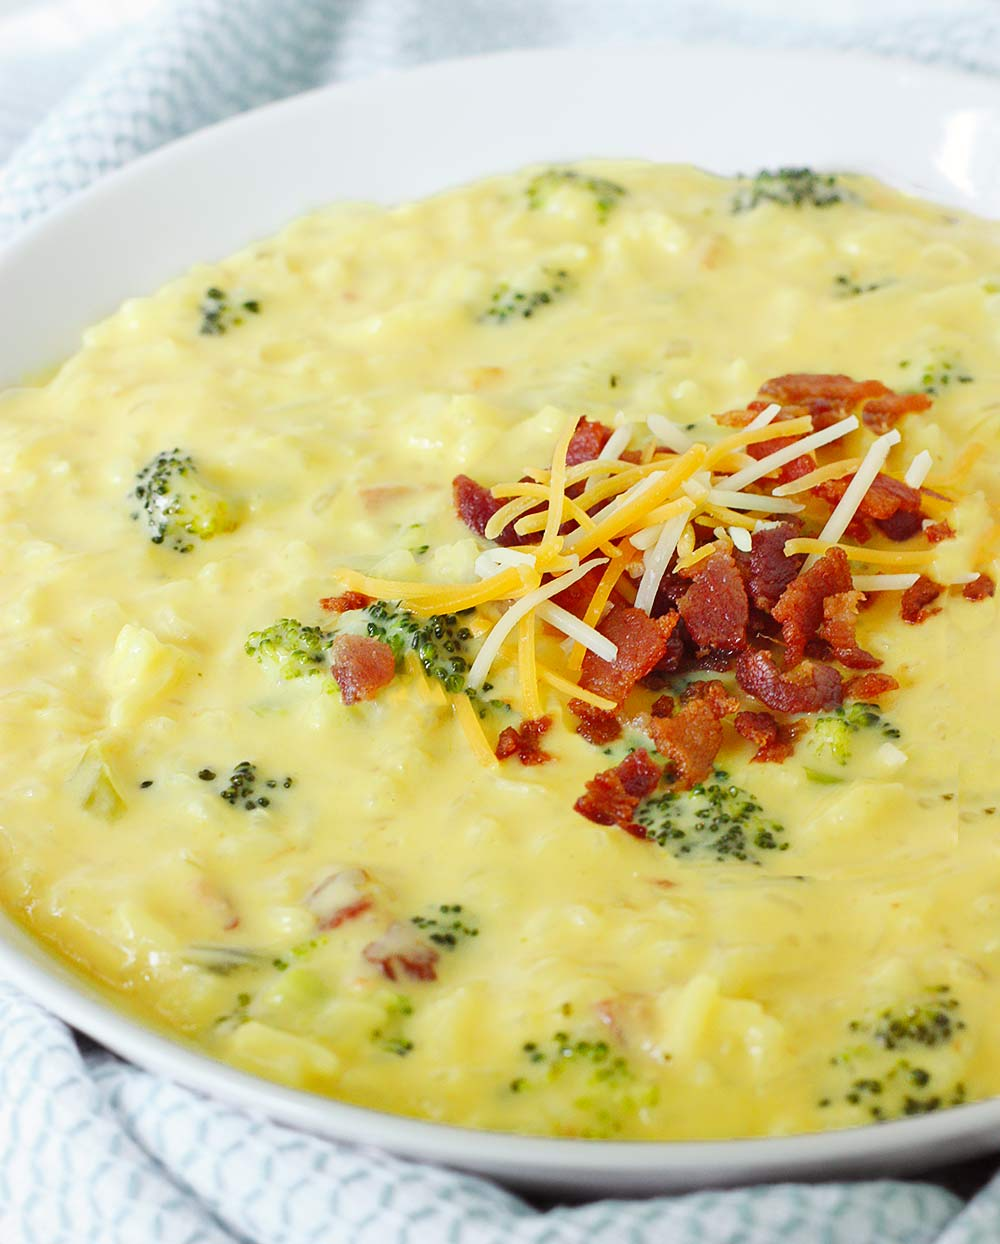 Cheesy Broccoli Rice Soup with Bacon from Soupaddict.com